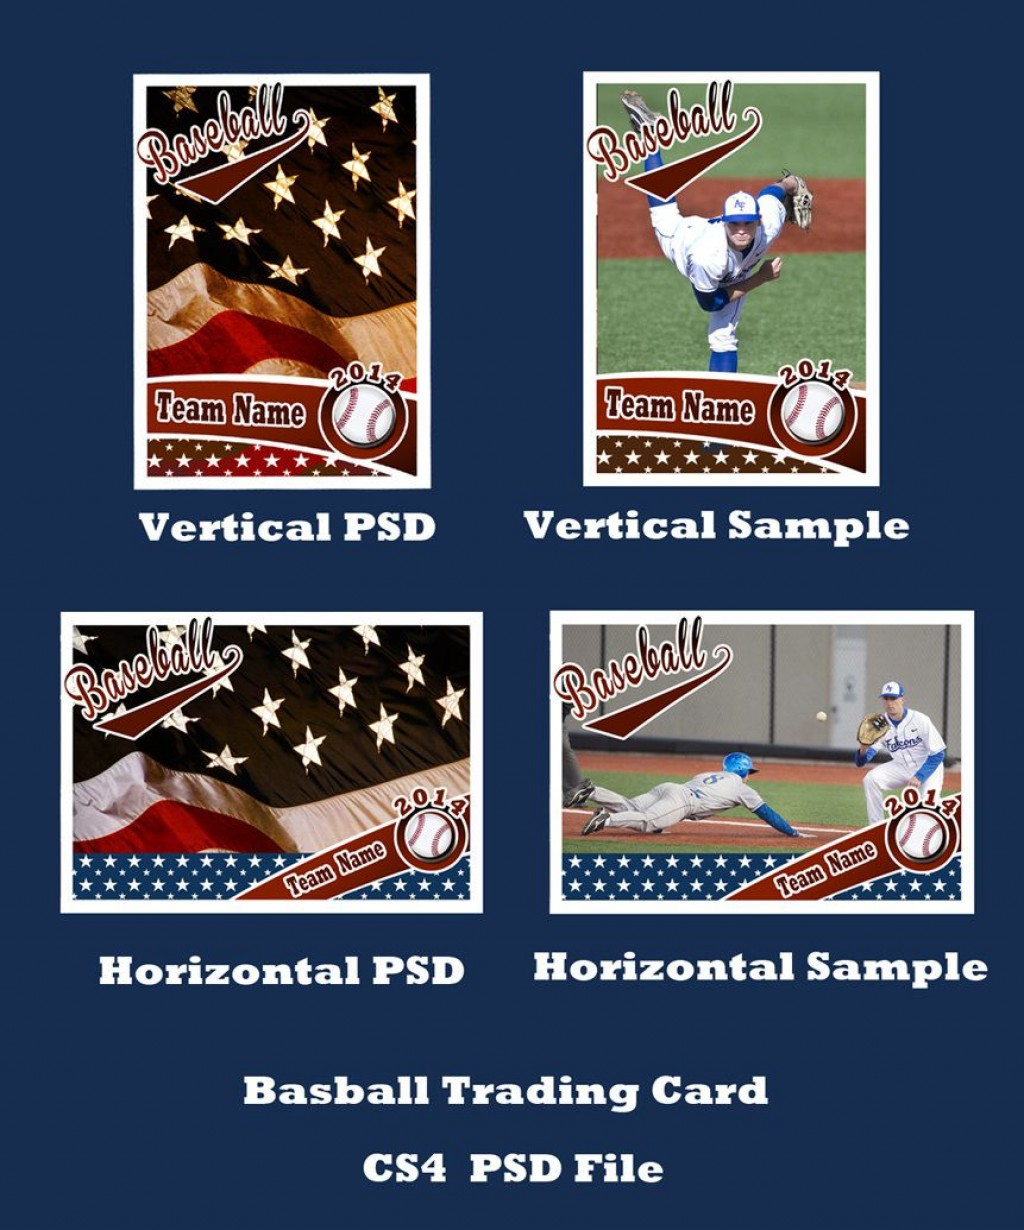 007 Staggering Baseball Card Template Photoshop Highest Clarity  Topp FreeLarge